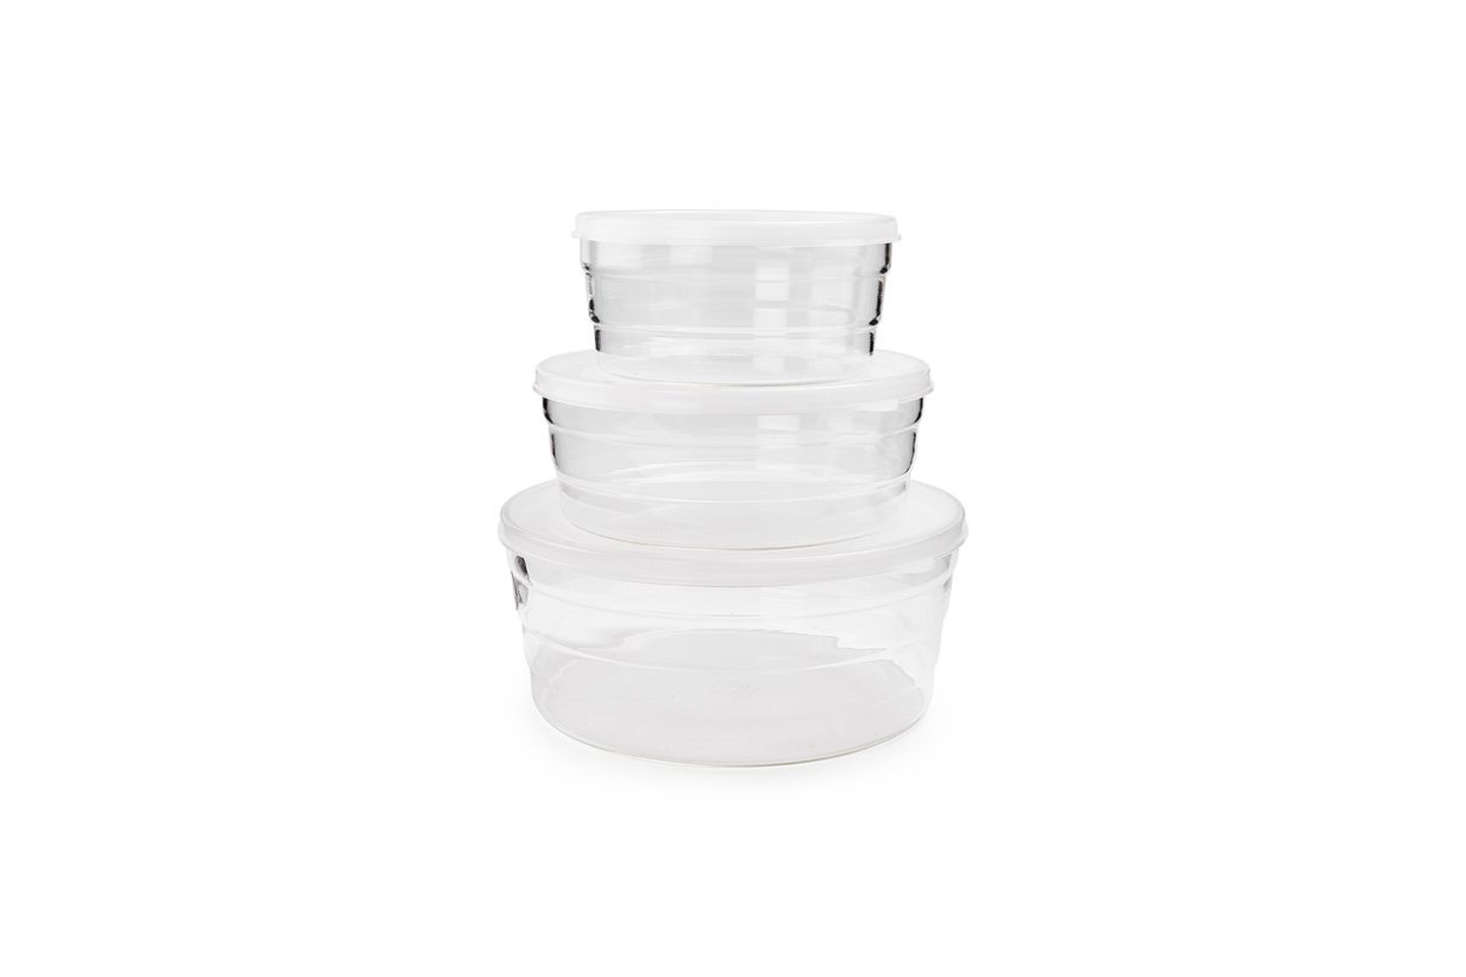 Another Remodelista favorite, now hard to find, the Trendglas Jena Glass Storage Dish comes with glass or plastic lids. Available through Trendglas Jena directly in Germany for €